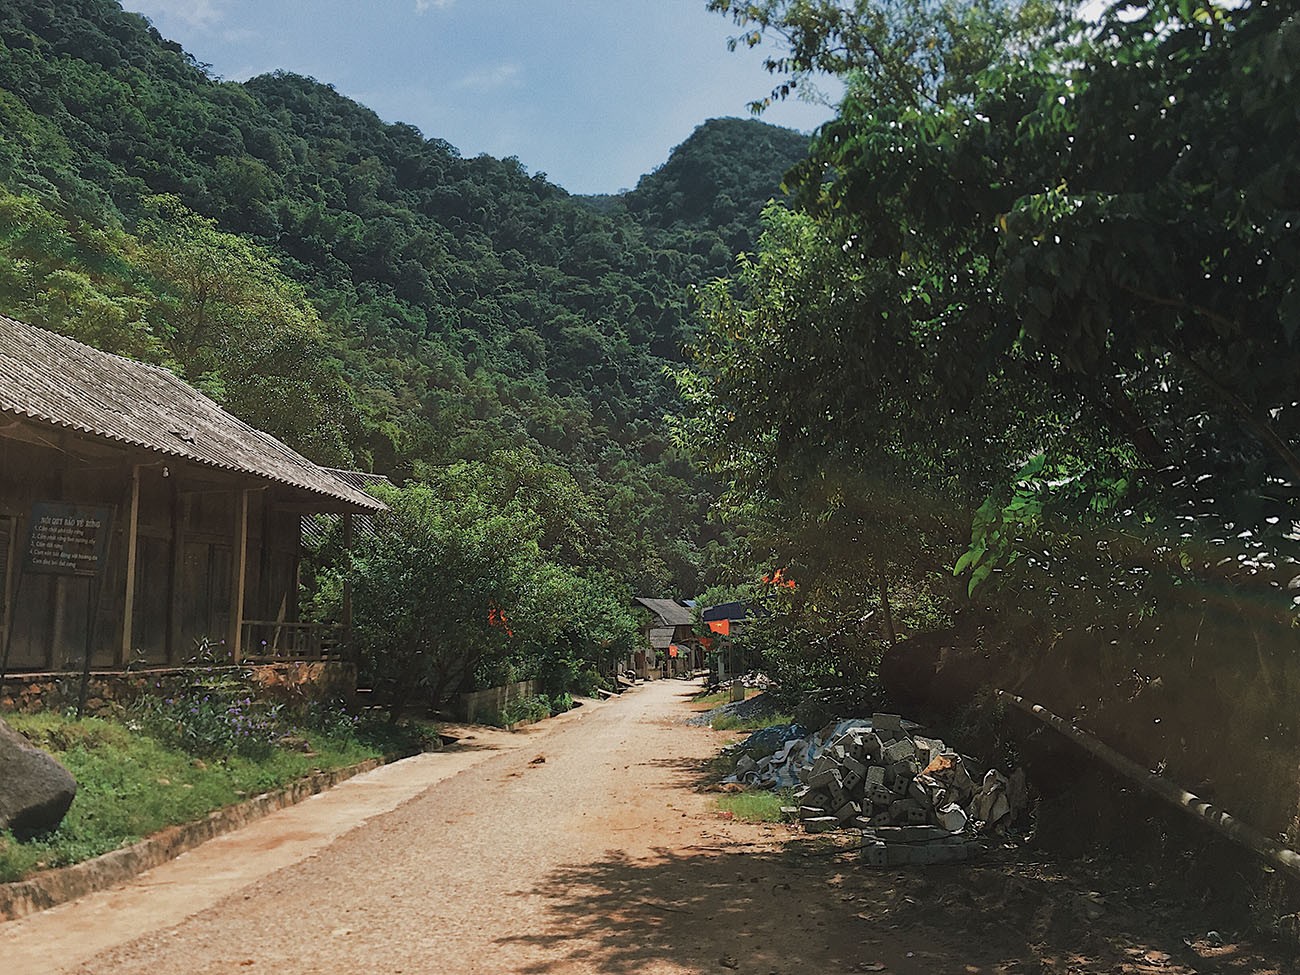 Off the beaten track in Pu Luong